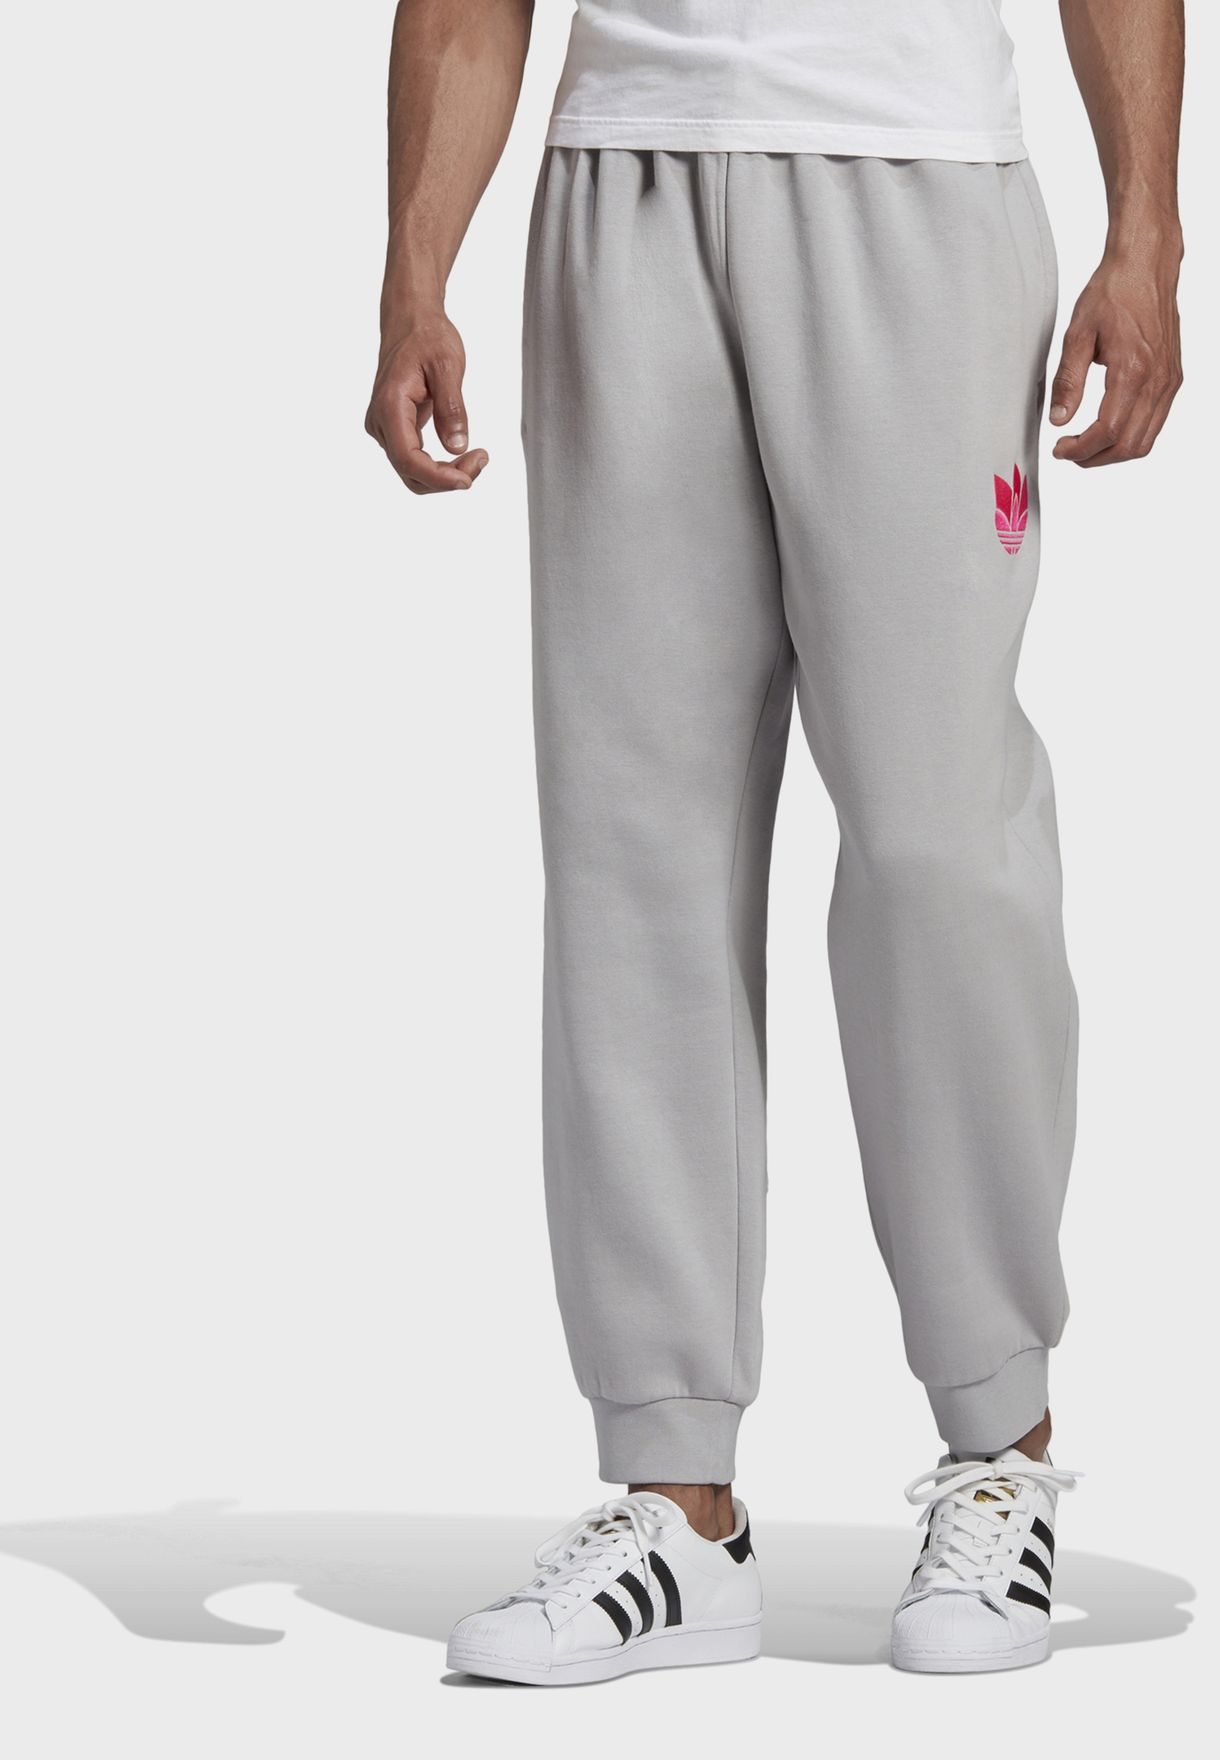 3D Trefoil Sweatpants